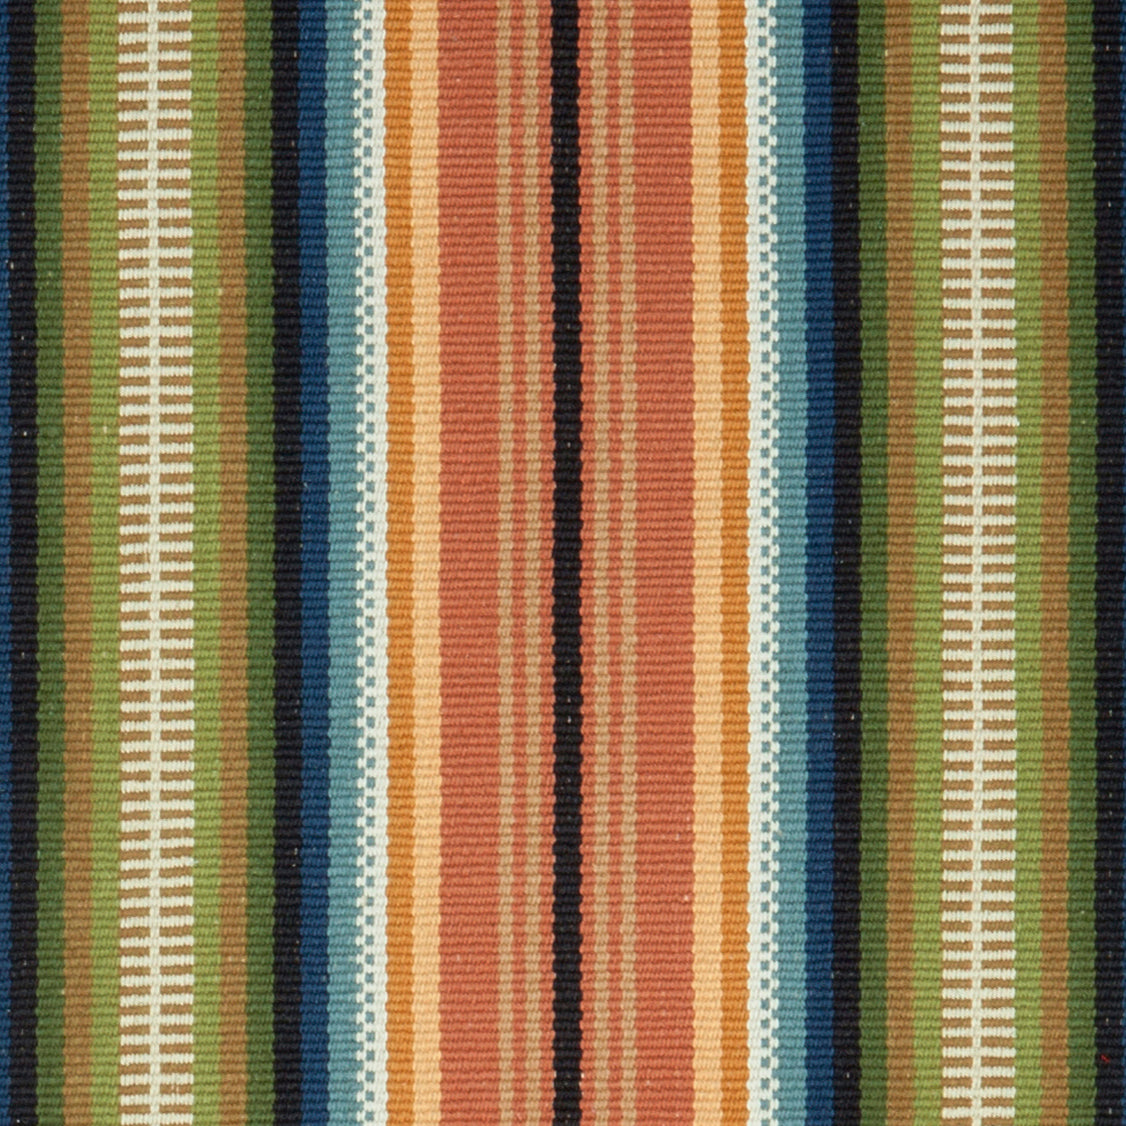 A historic American design offered in two colorways. #51-A is pumpkin, mustard, blue, green, rust, putty and black stripes. Available as a runner and may be seamed to any size.